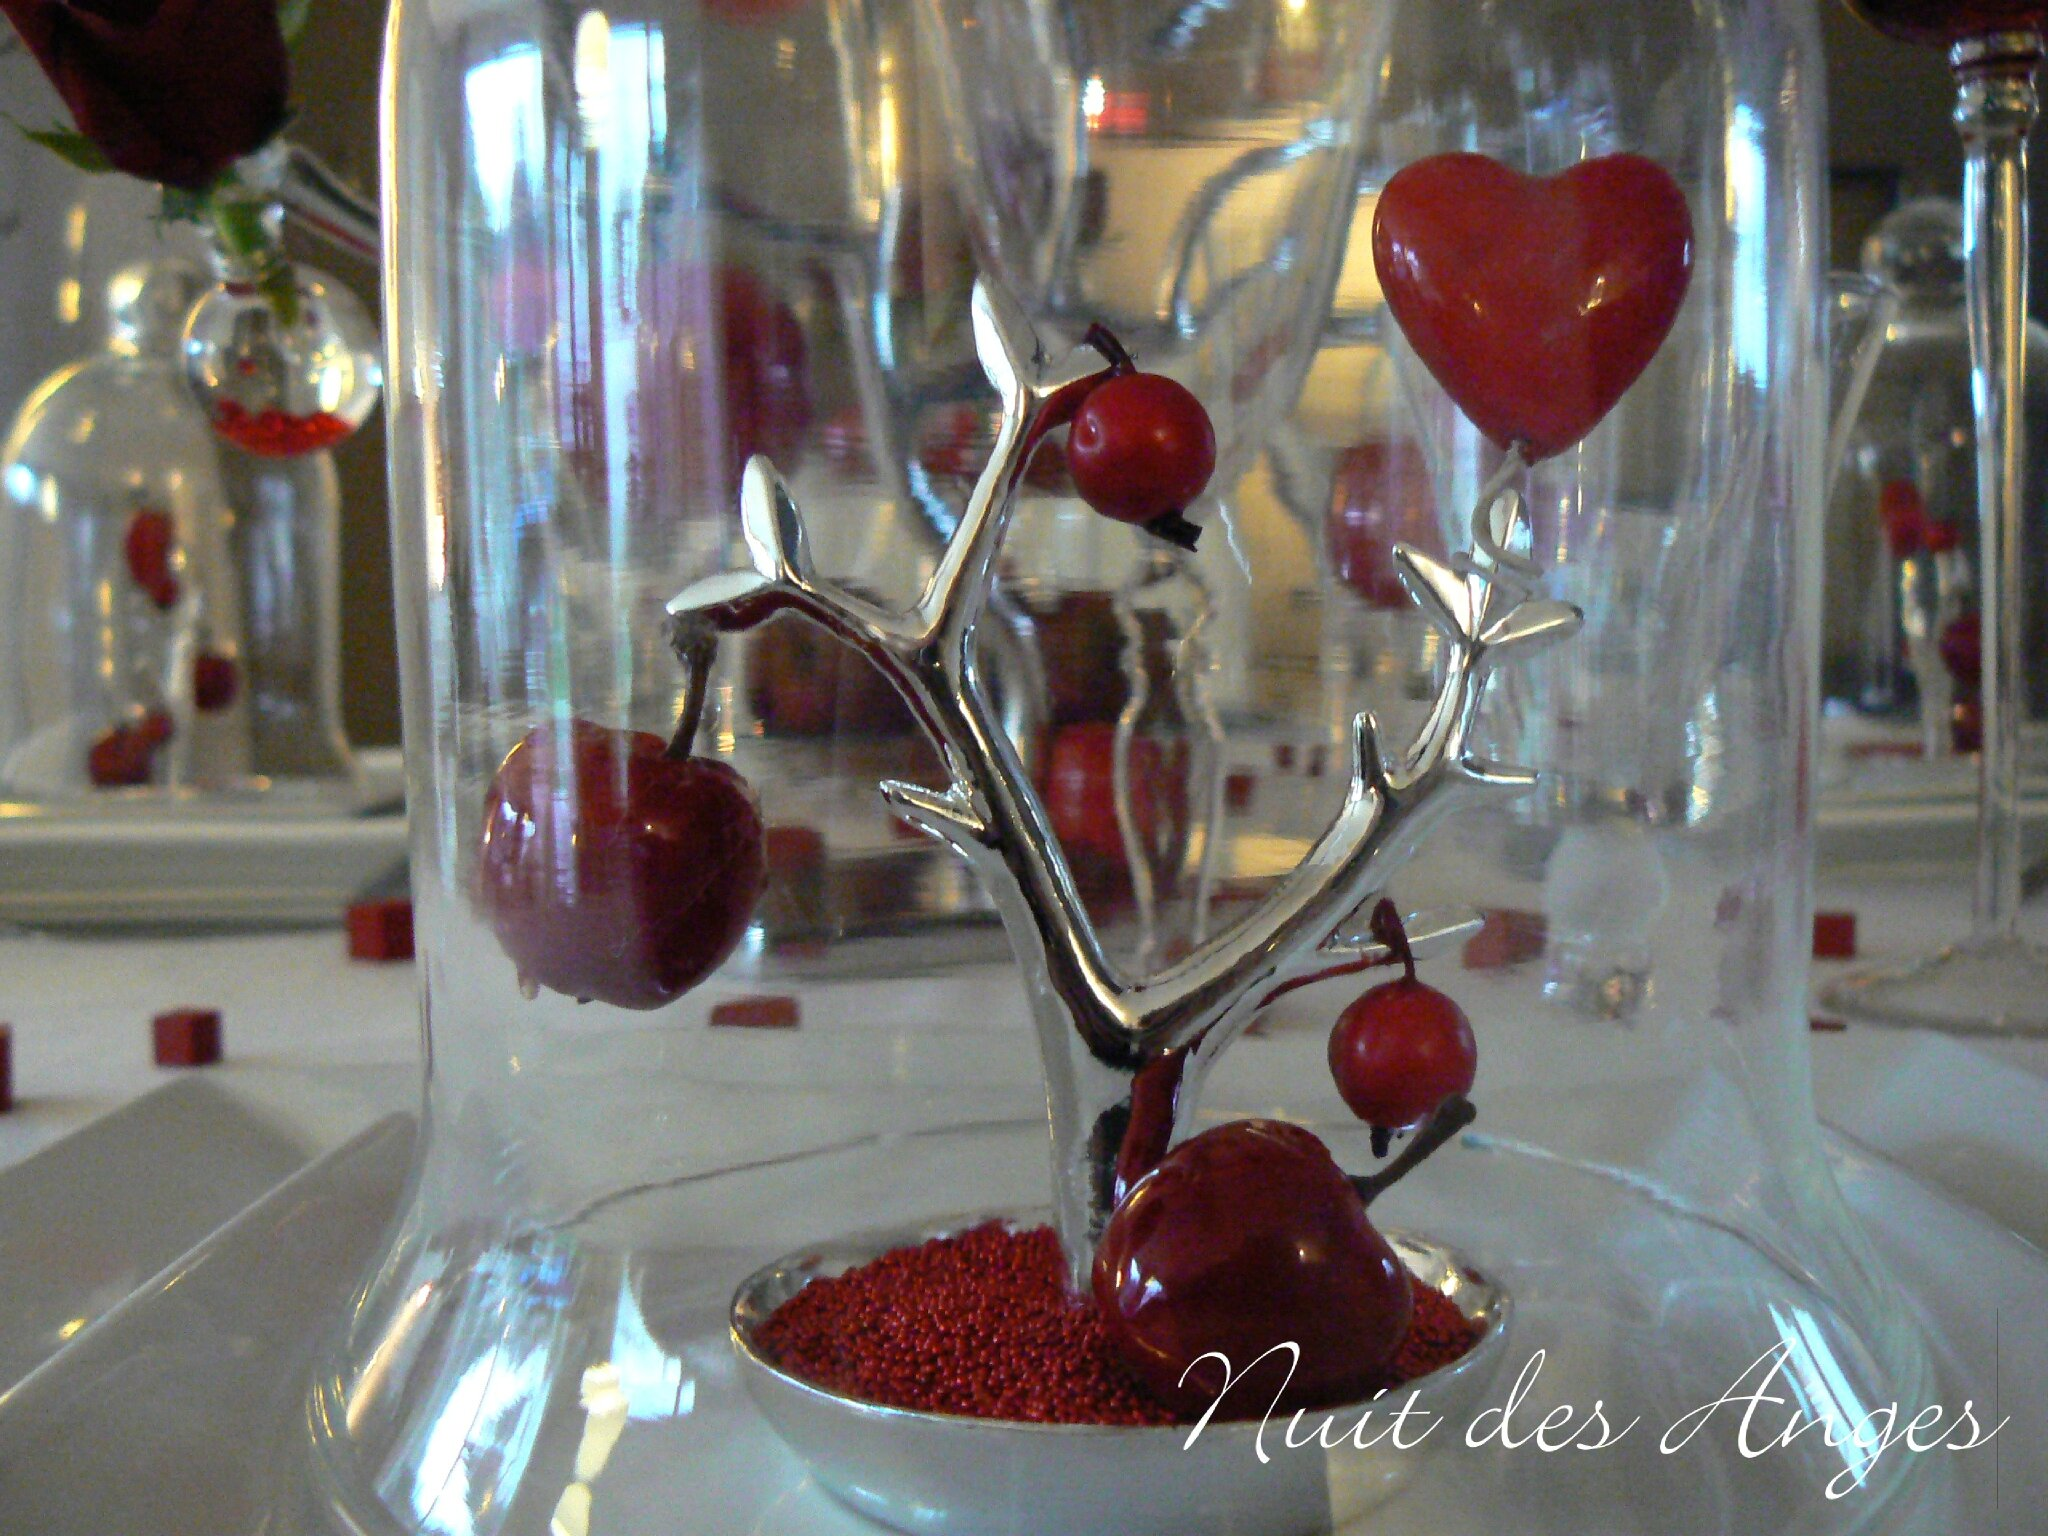 D coration de table rouge pomme d 39 amour nuit des anges for Decoration pomme rouge